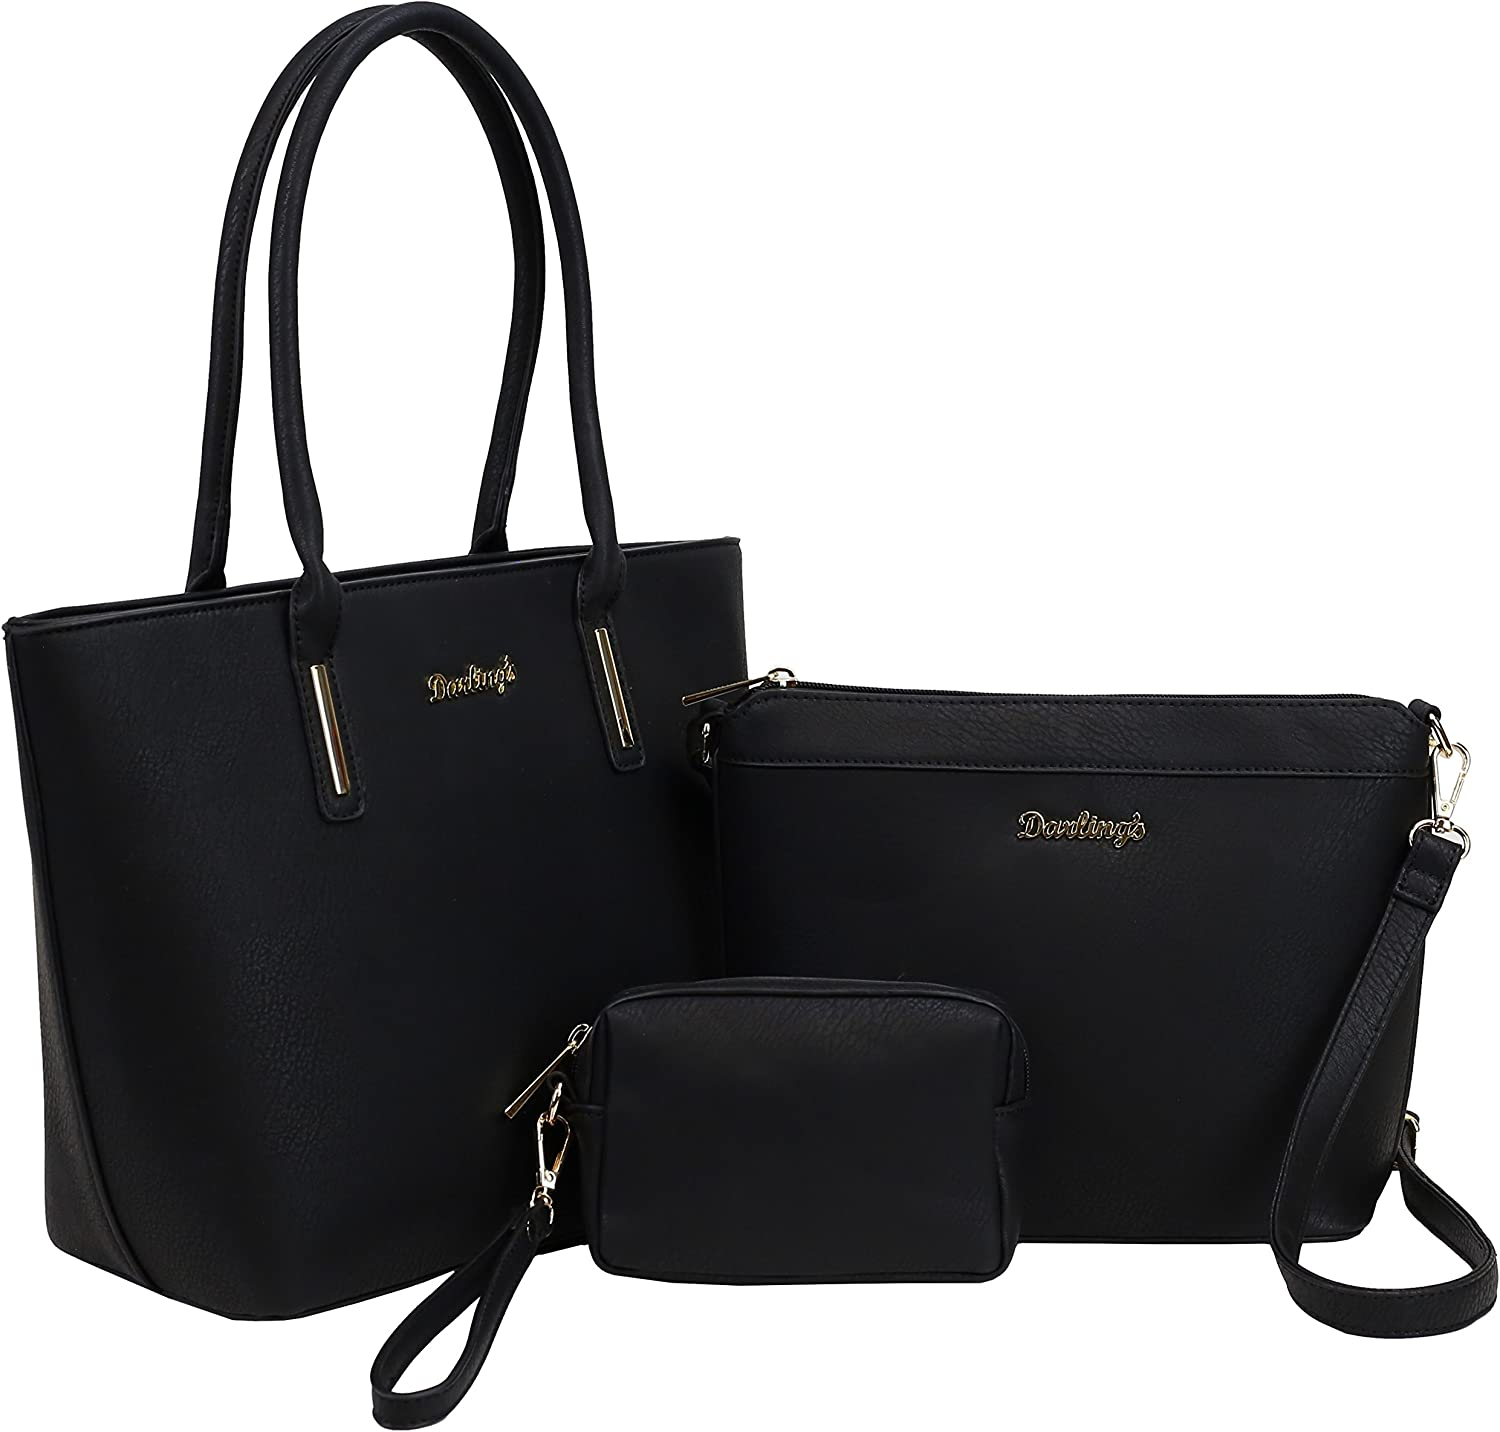 Darling's Classic Faux Leather Designer Carryall Tote - 3 Piece Shoulder Crossbody Carry Bag Set - Large, Medium & Small